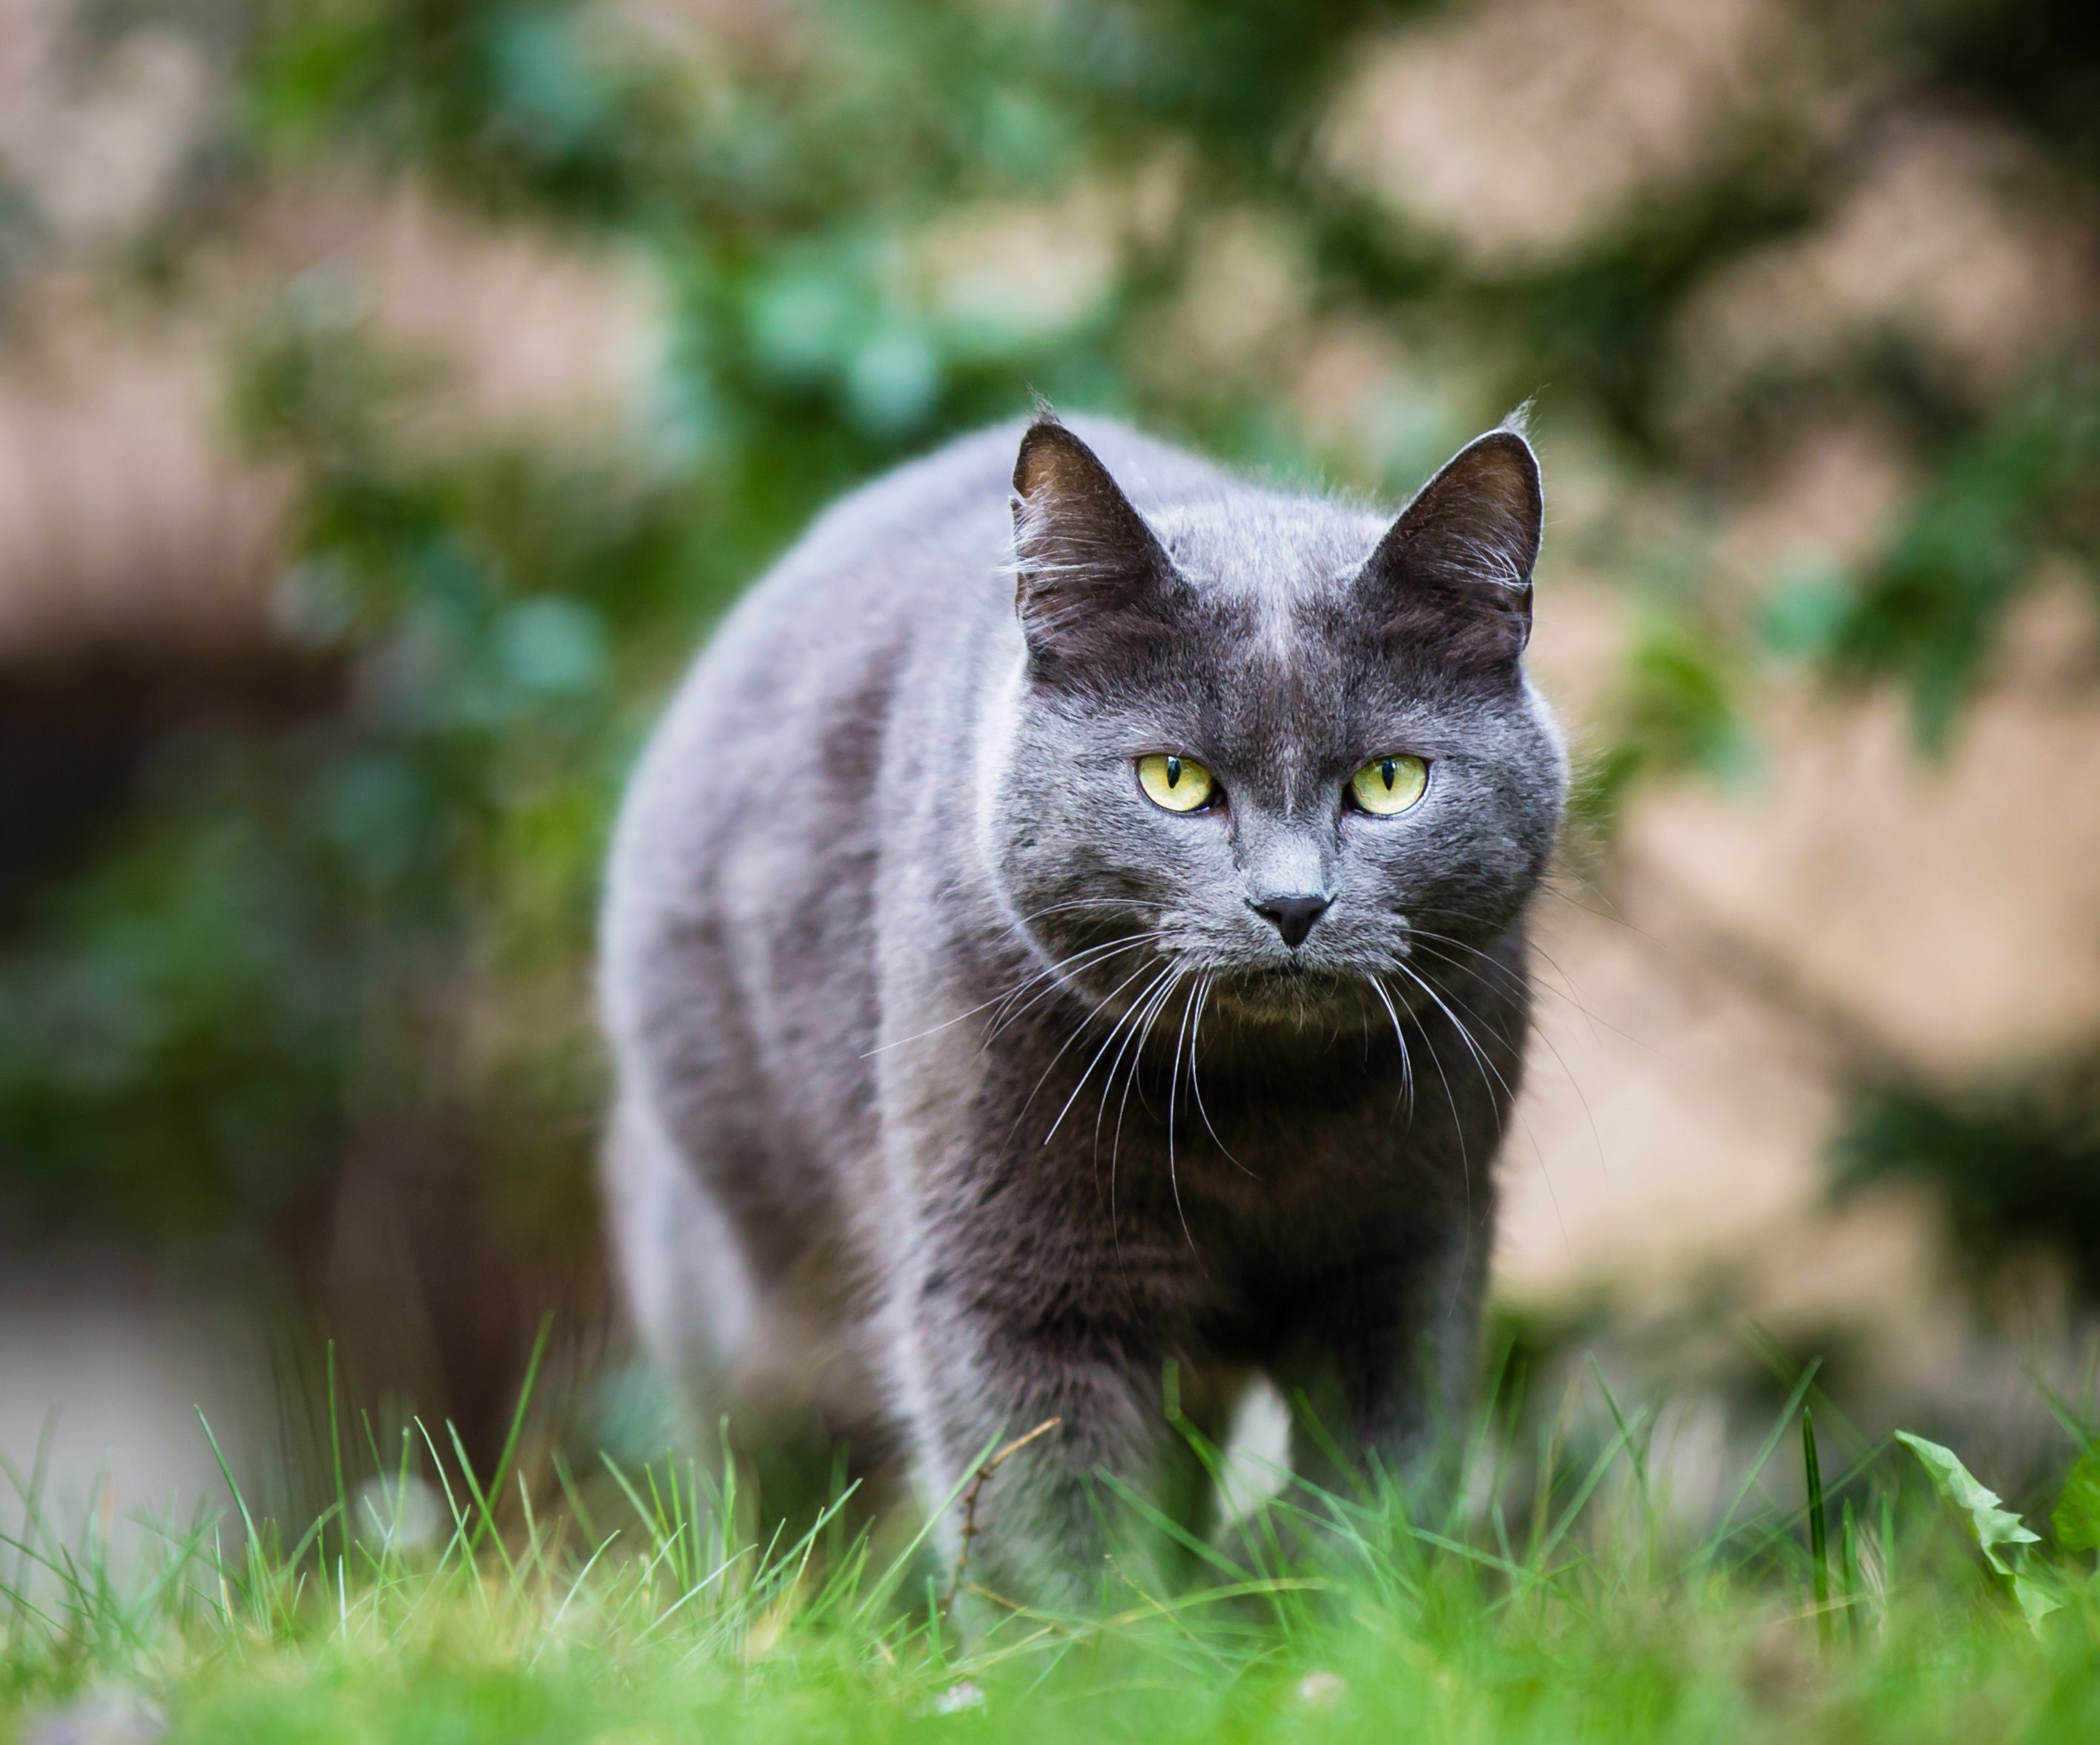 Cat outdoors on a green lawn, walking towards you